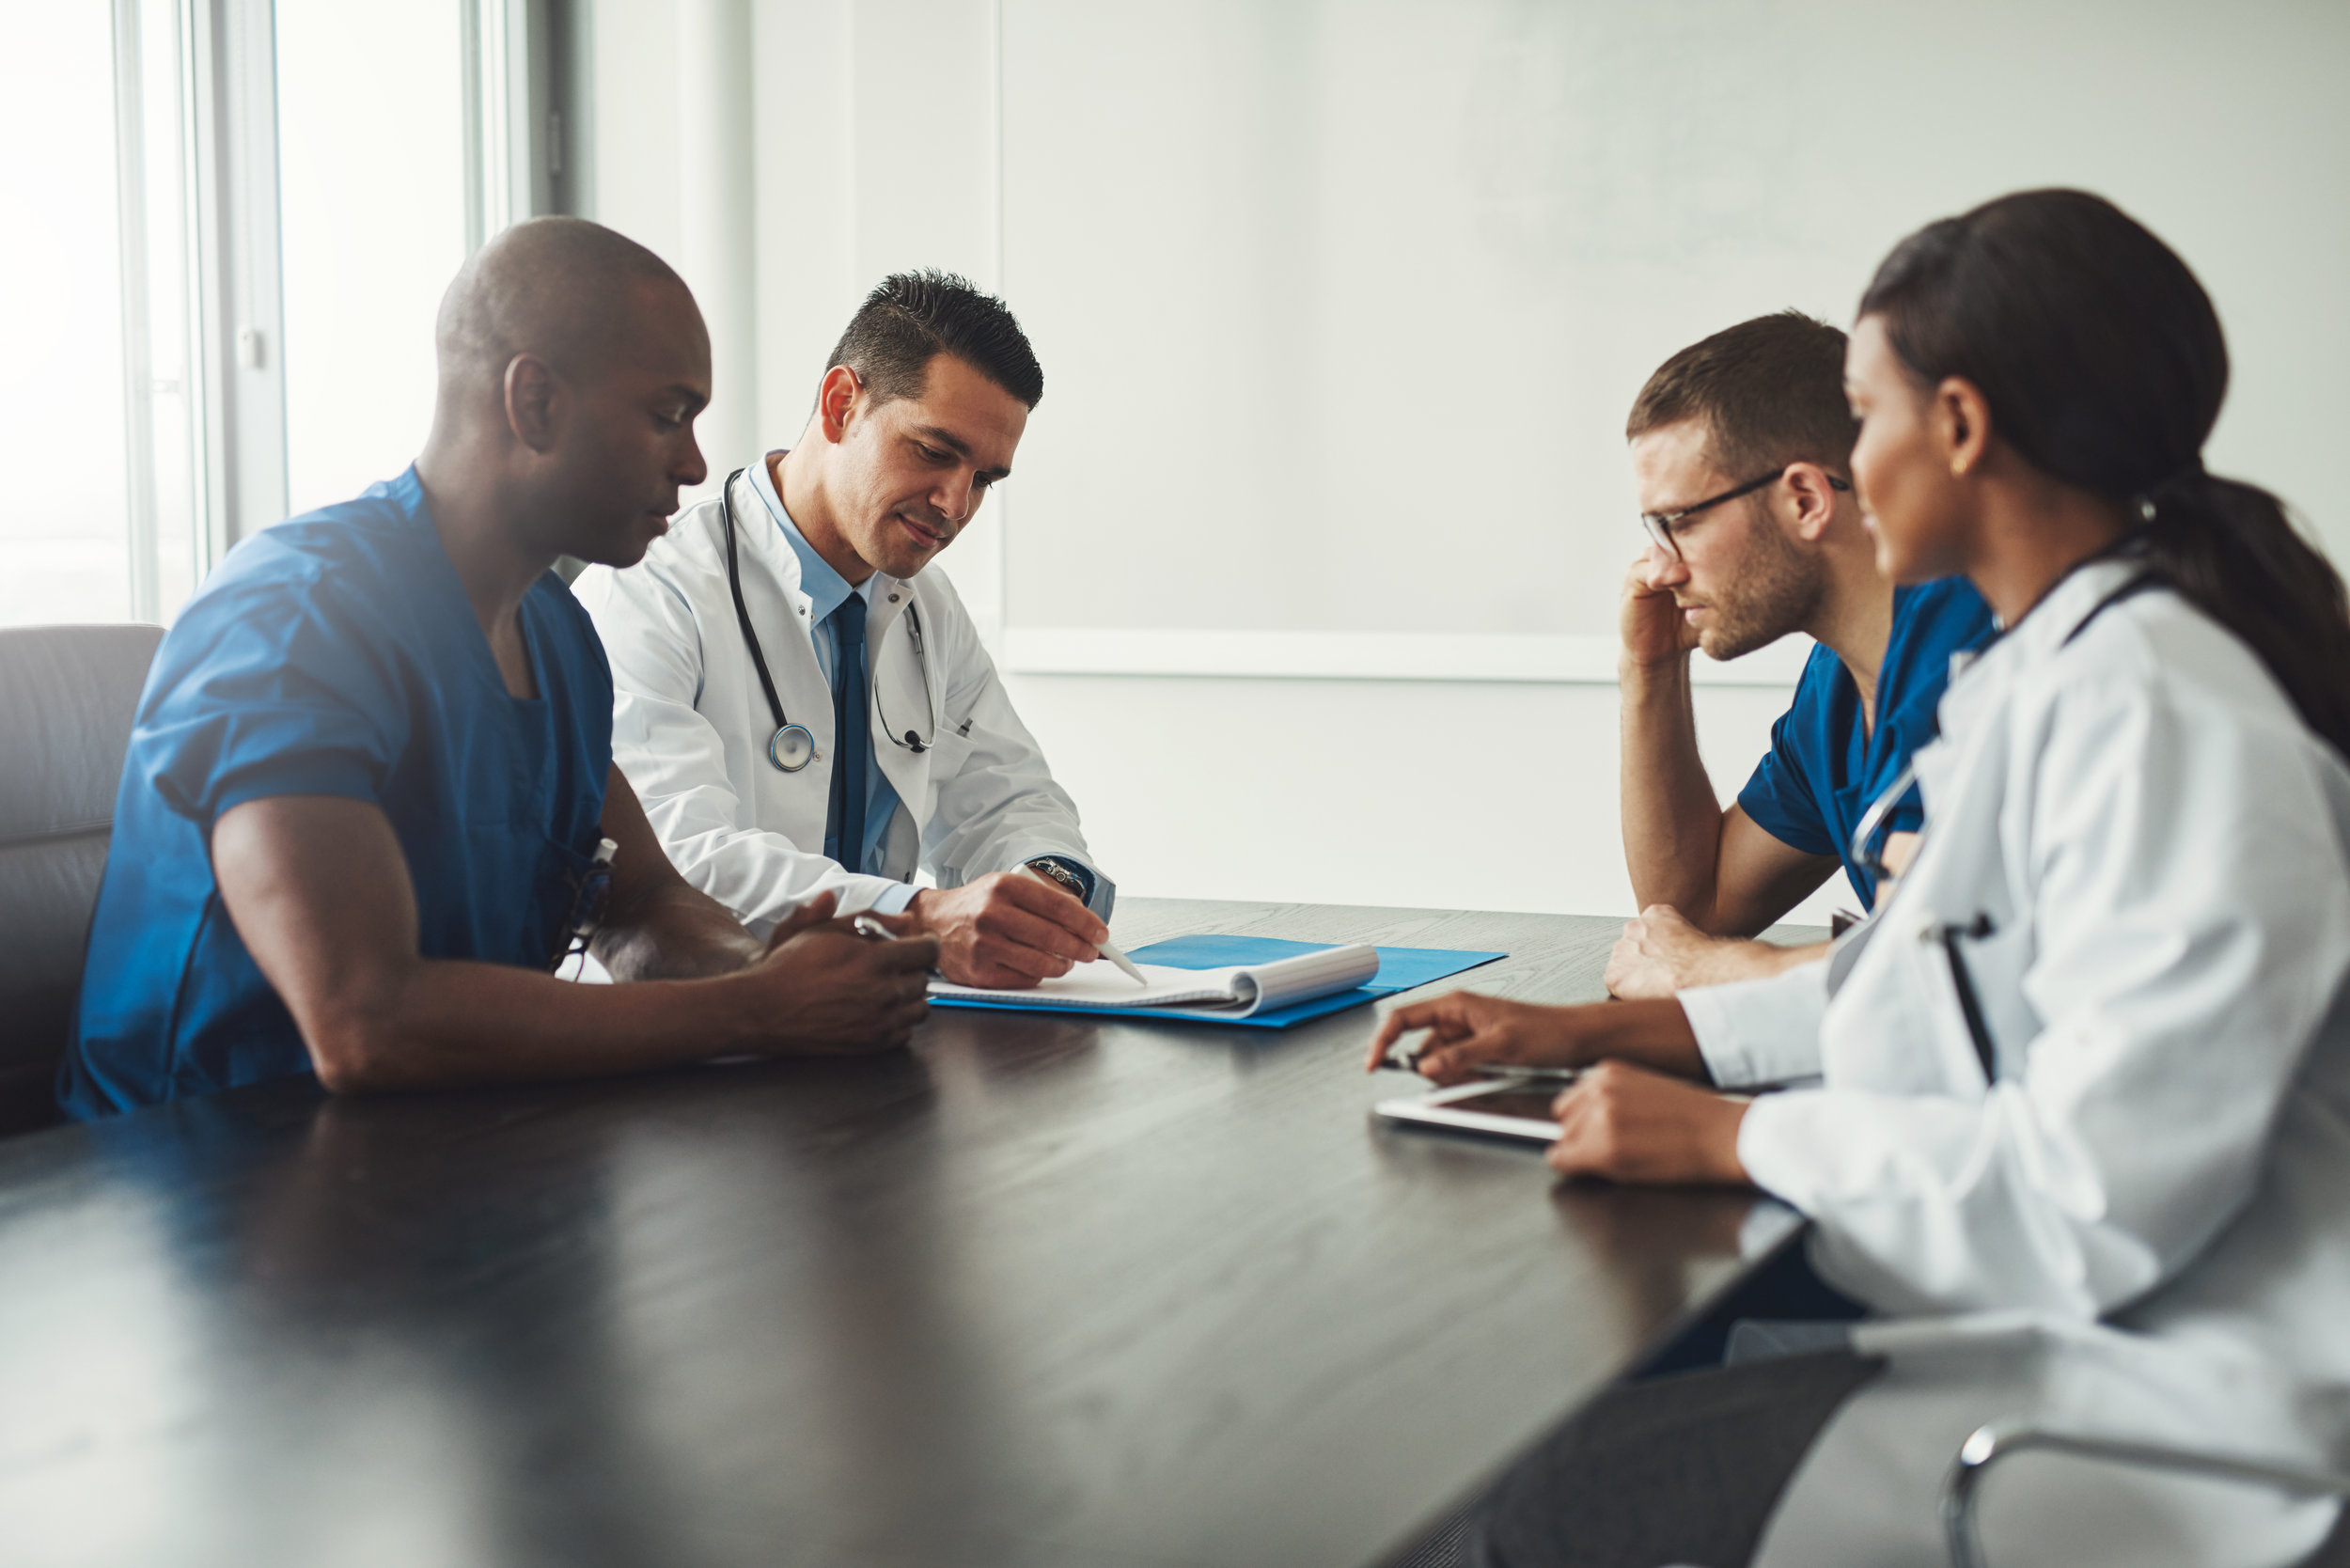 Four primary care doctors completing paperwork and evaluating patient history